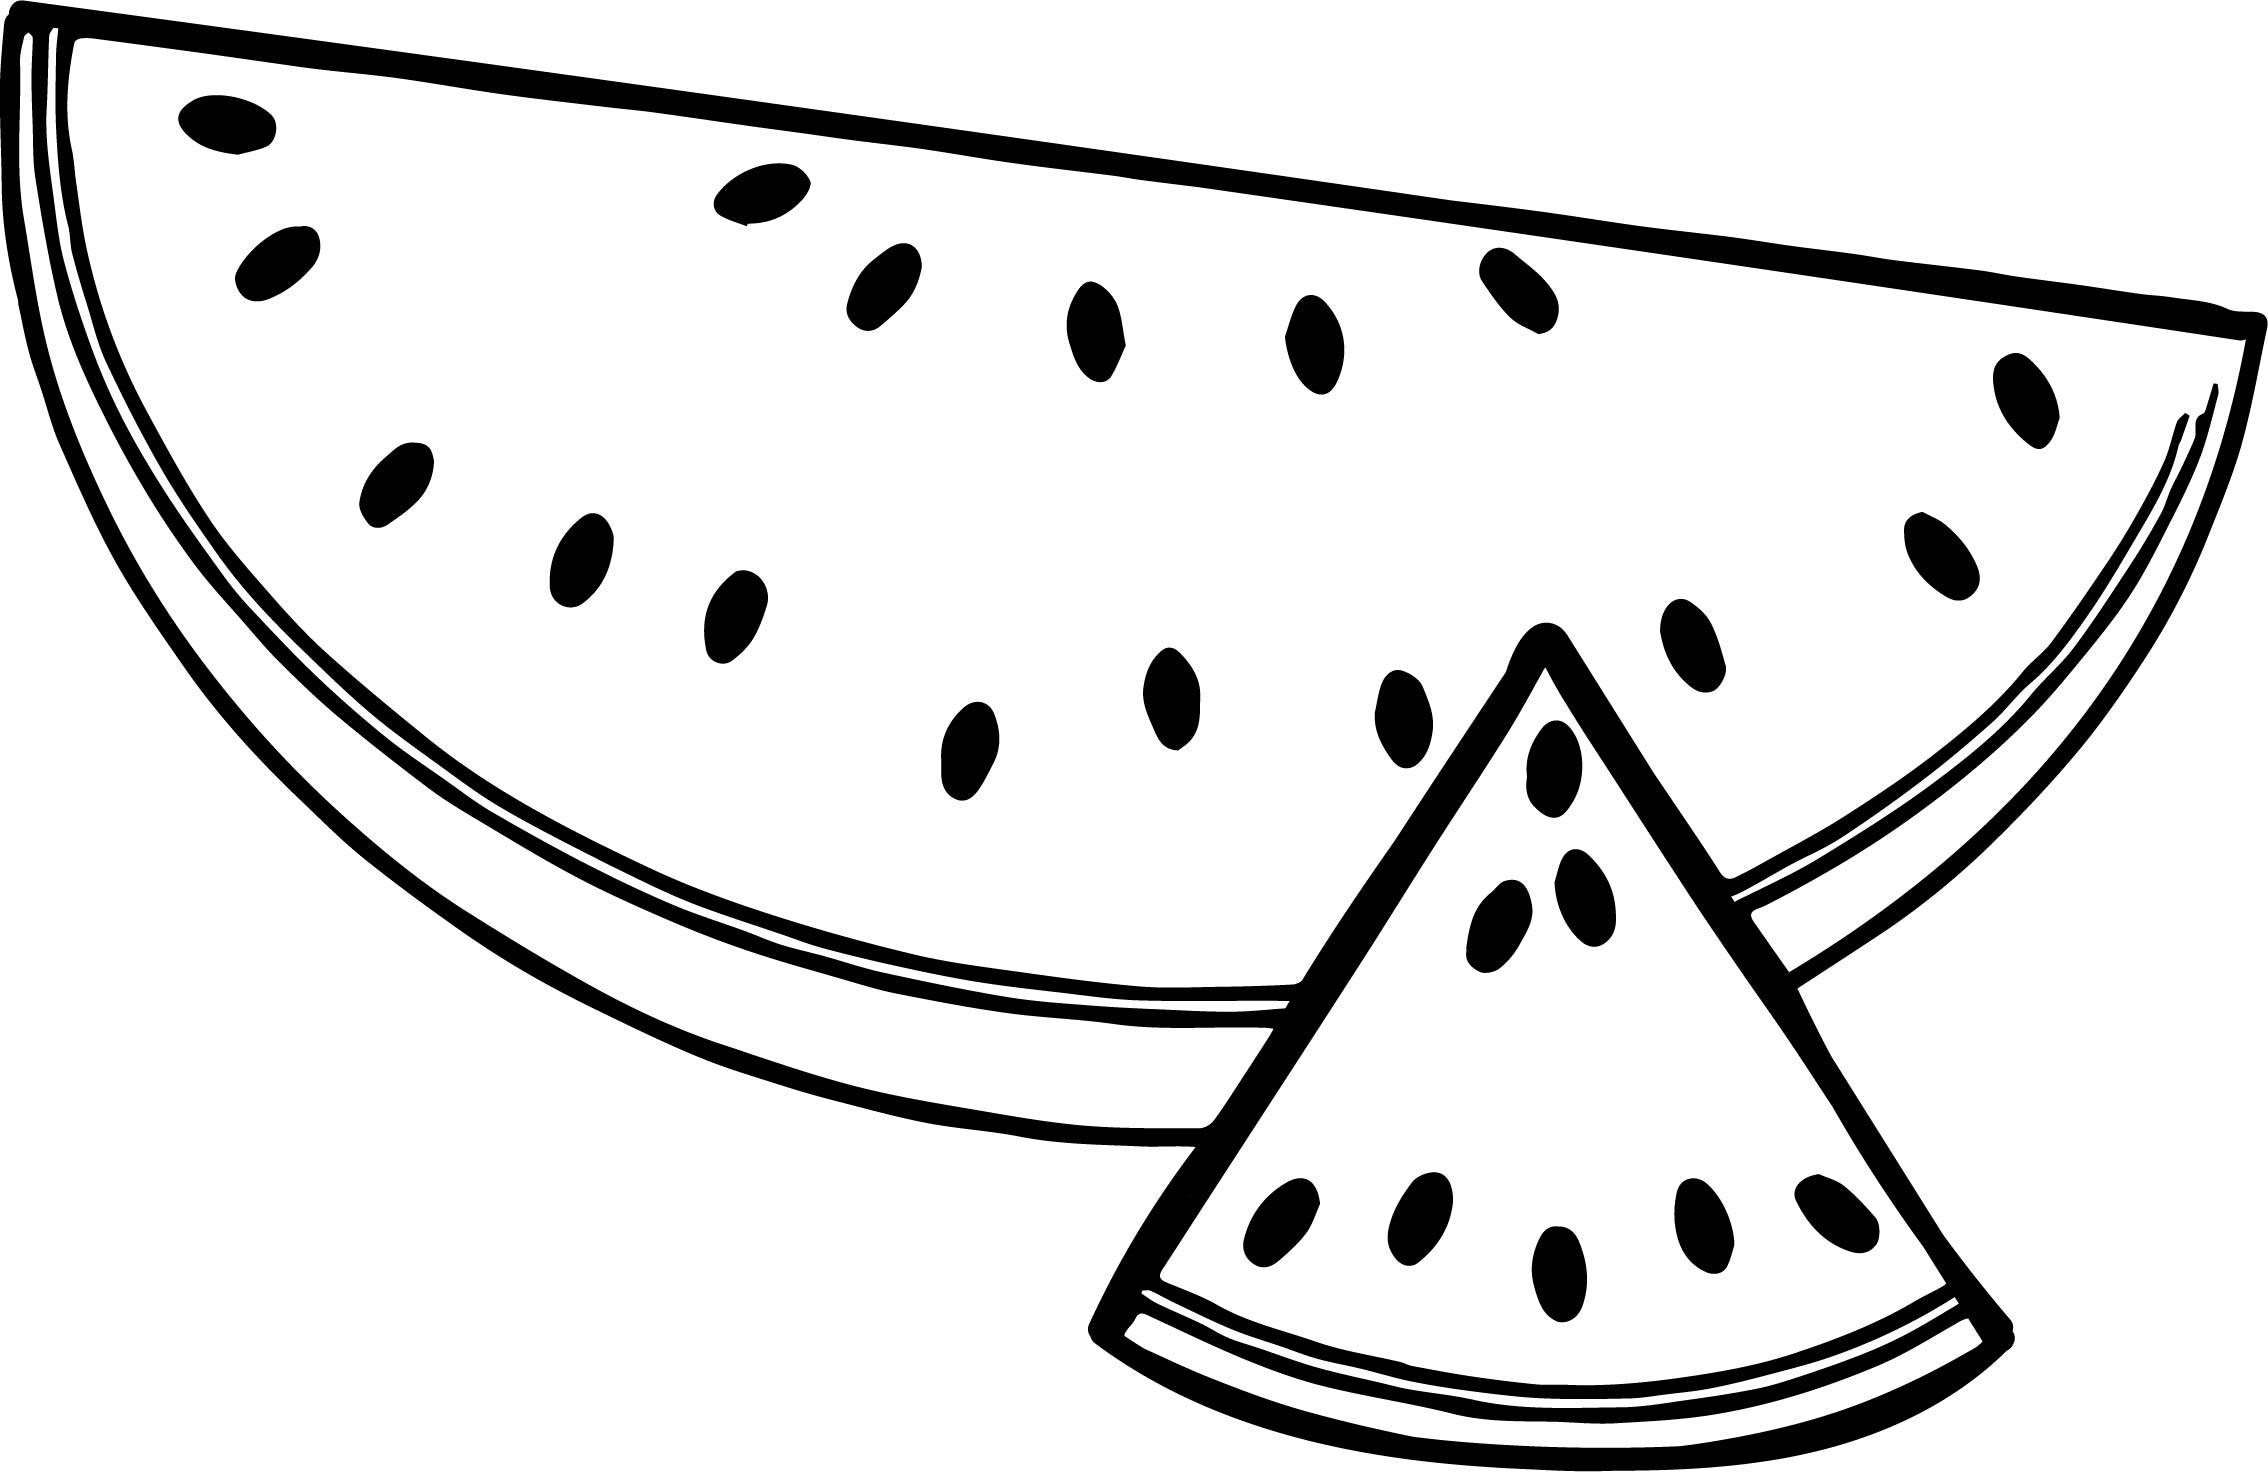 watermelon coloring pages cute watermelon drawing at getdrawings free download coloring pages watermelon